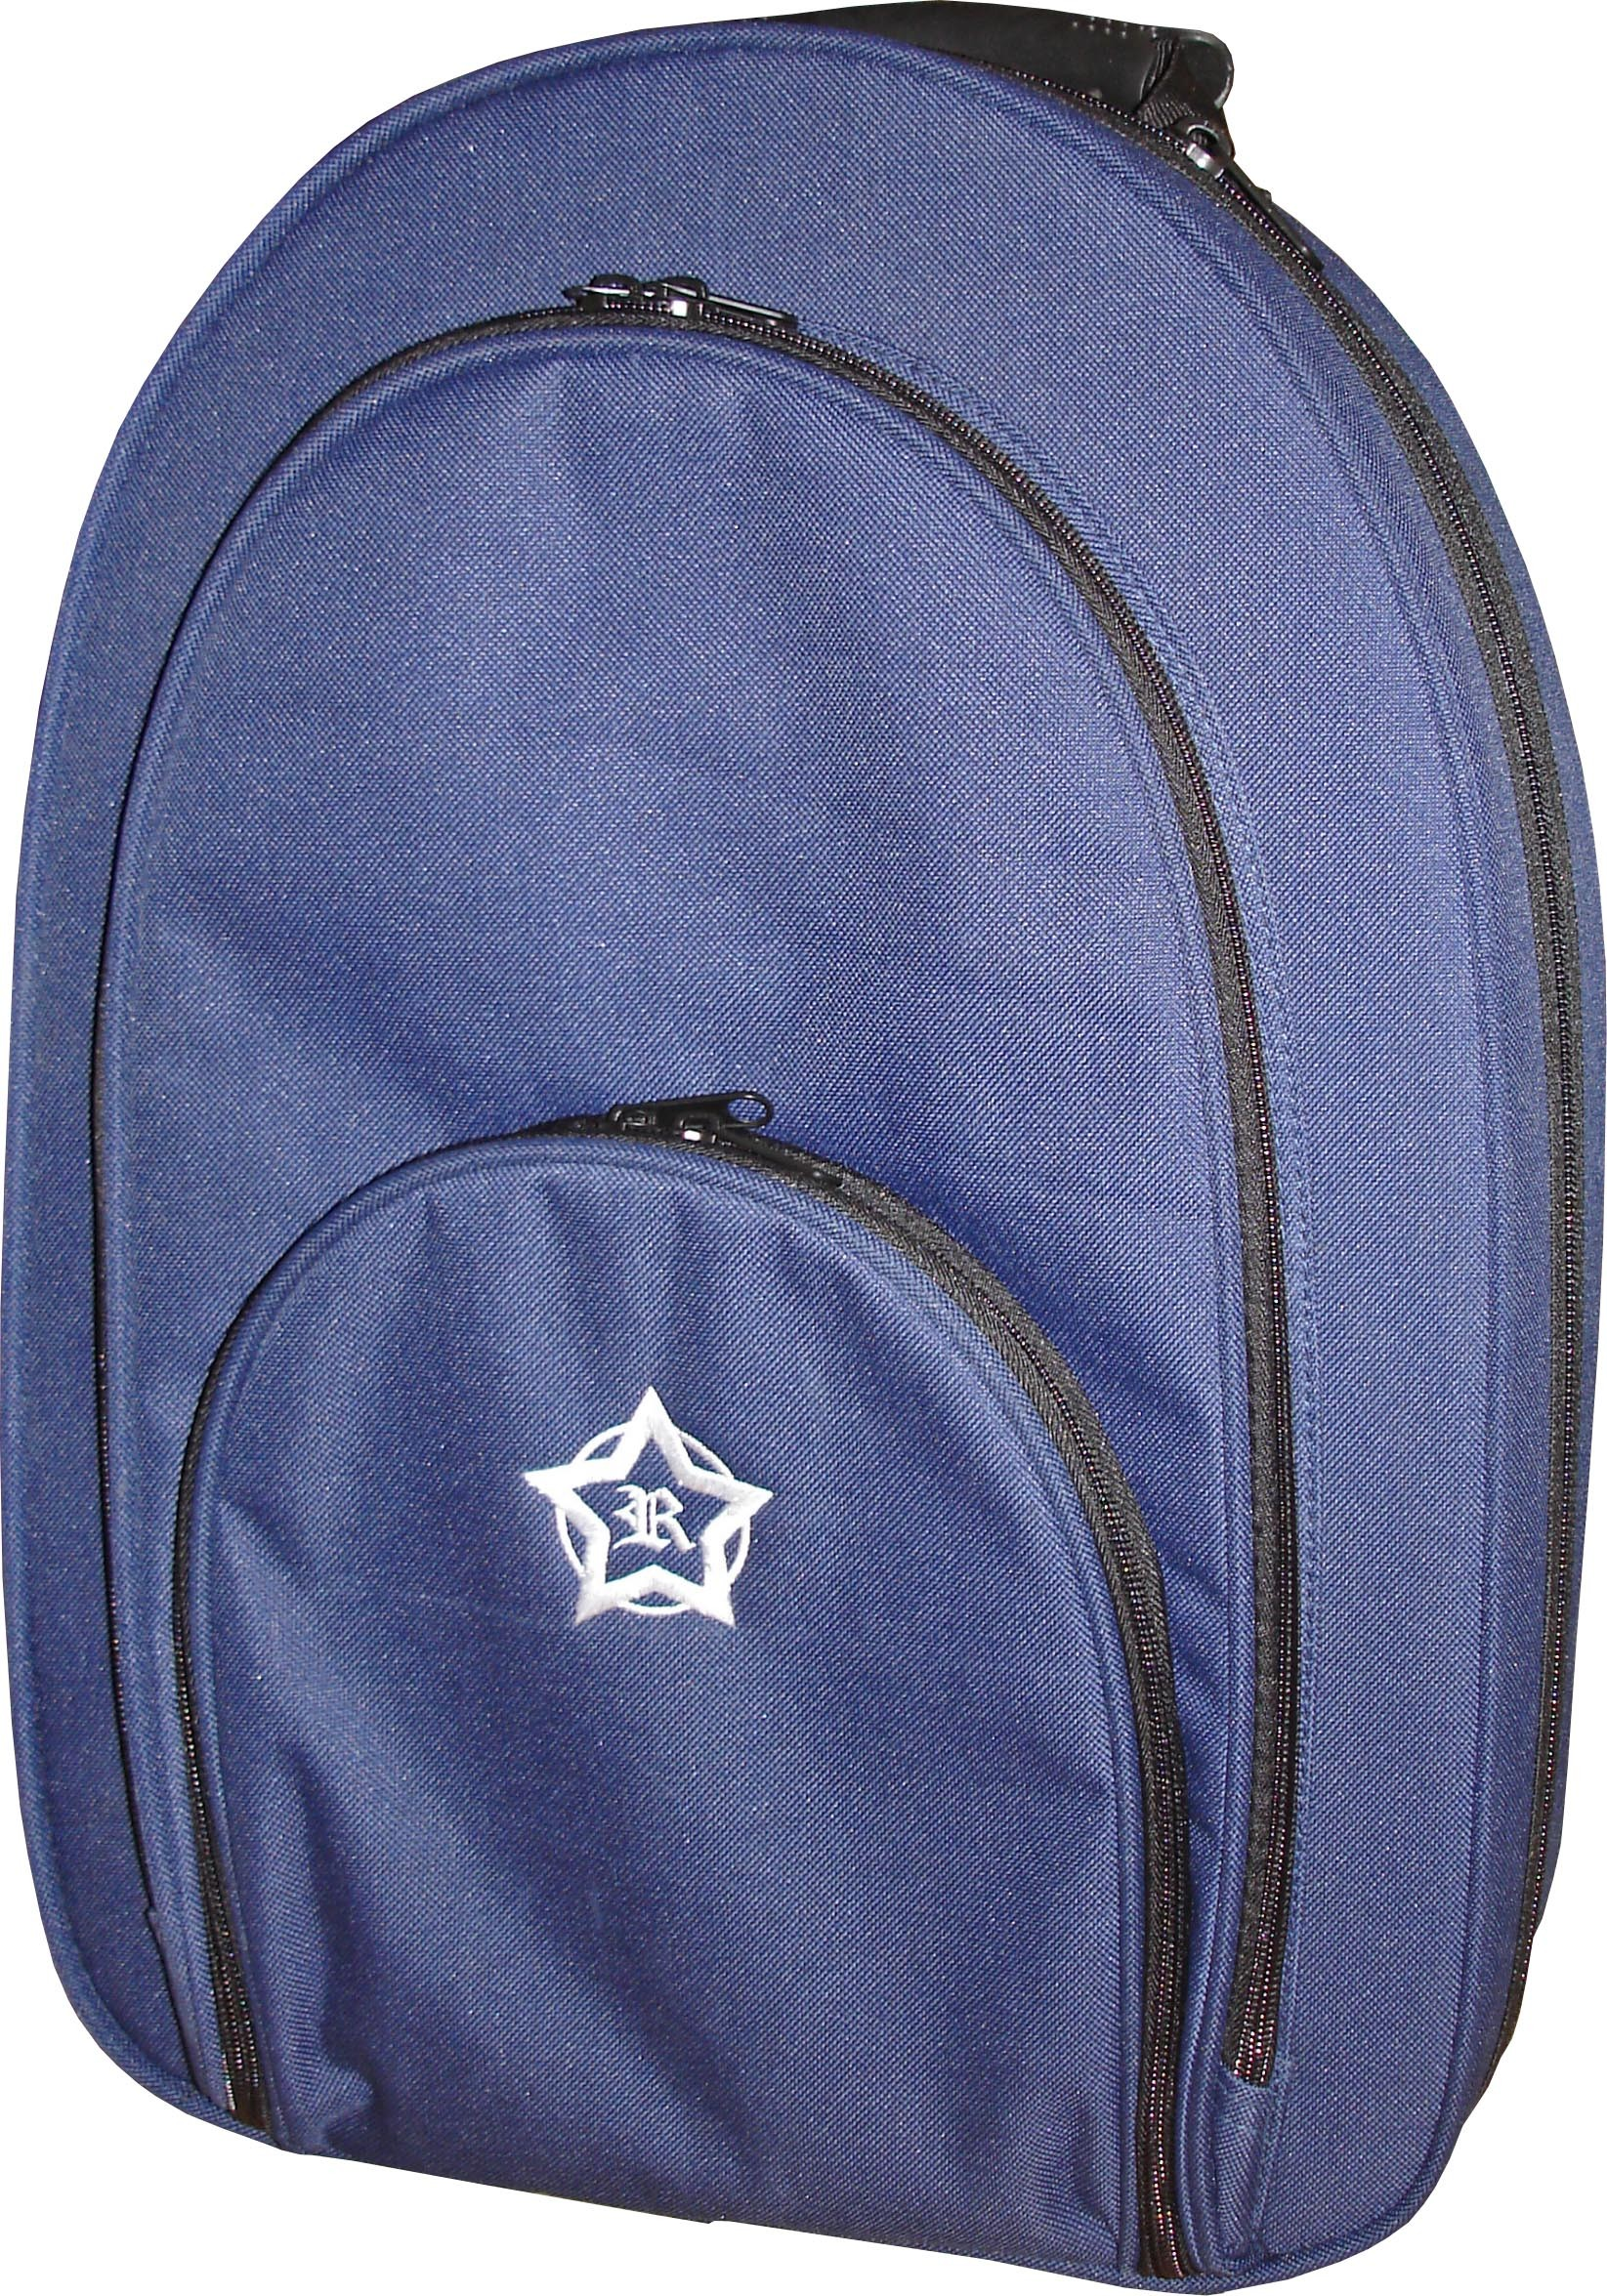 Rosetti Double Clarinet Bag - Blue